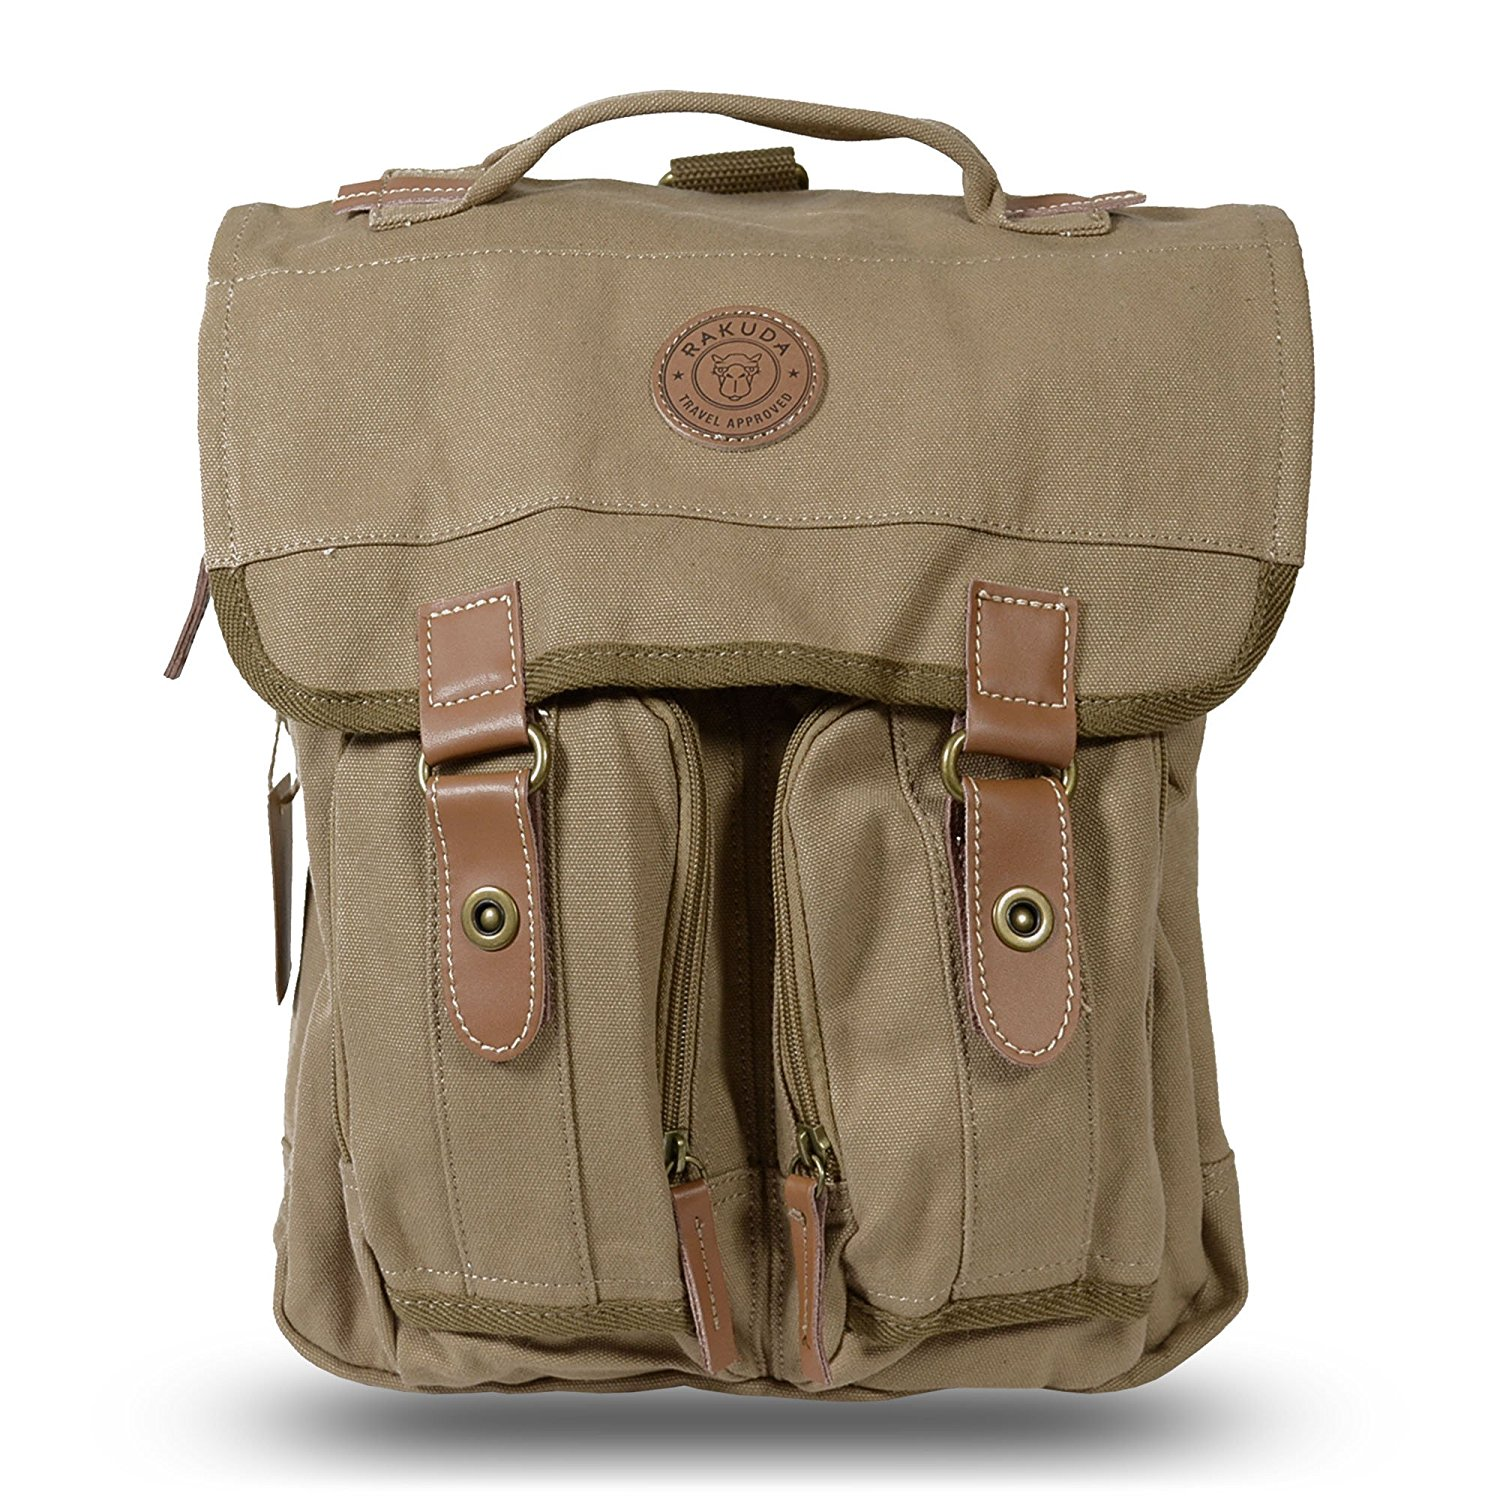 Rakuda Canvas Messenger Bag with Leather Trim Traveling Hiking ...